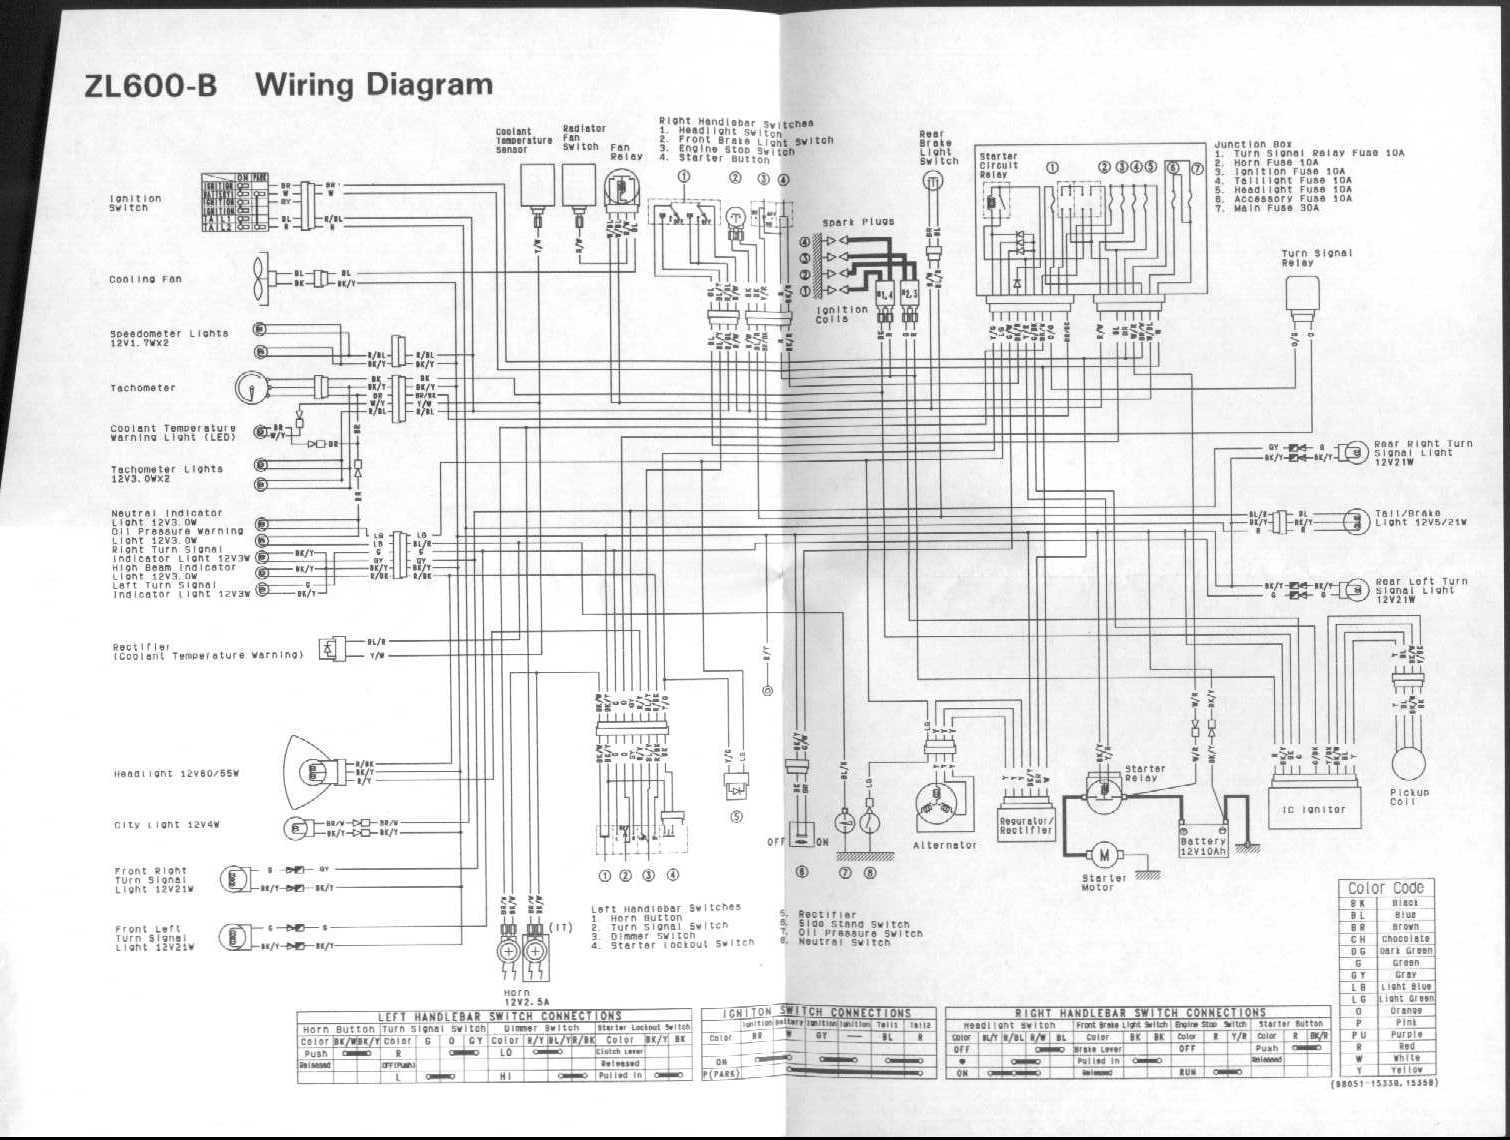 Wiring Diagram Legend in addition Klr 650 Wiring Diagram likewise Polaris Ranger 500 Wiring Diagram 2006 29433f5ac9b36dc9 also Kx 85 Engine Diagram in addition Safety Harness Parts Diagram. on klr 250 wiring diagram